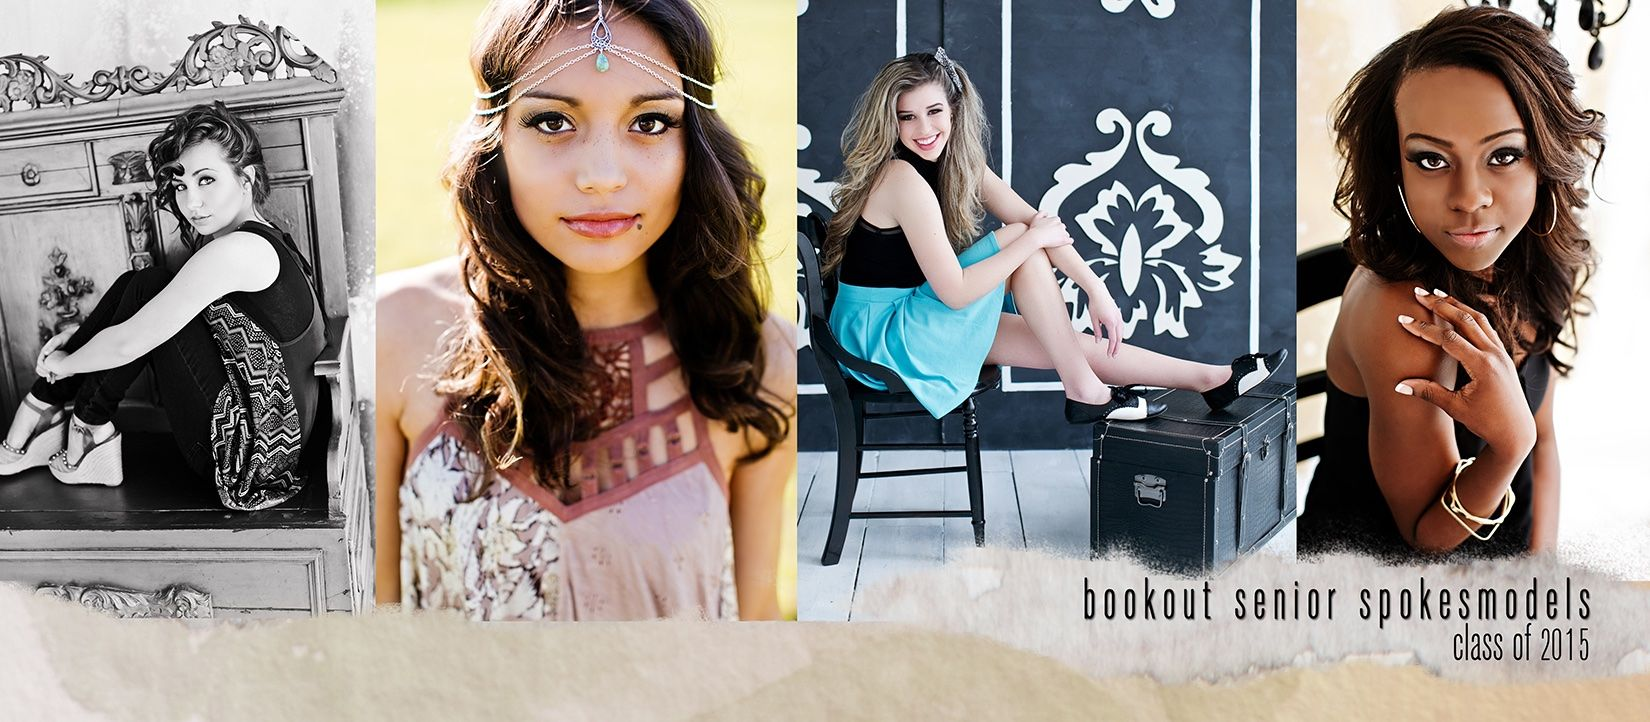 Senior Spokesmodels 2016 - Bookout Studios Blog Now accepting ...